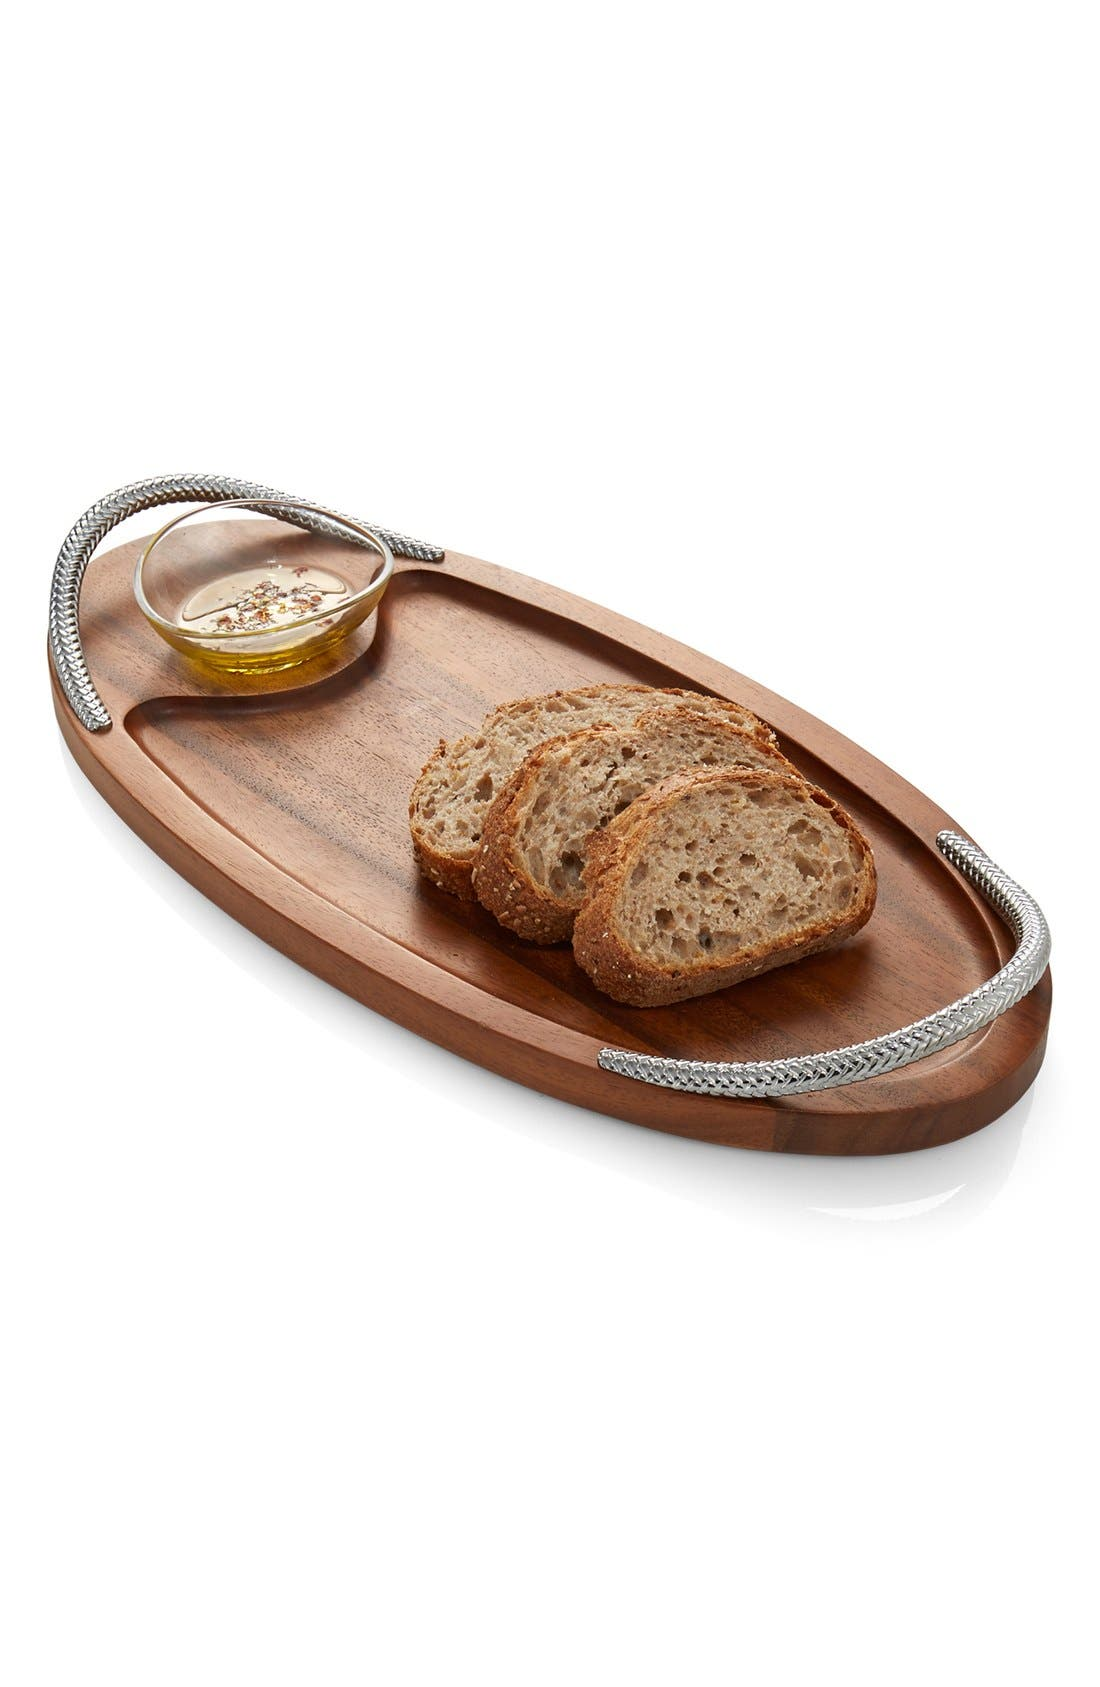 Bread Board & Dipping Bowl,                             Alternate thumbnail 2, color,                             200